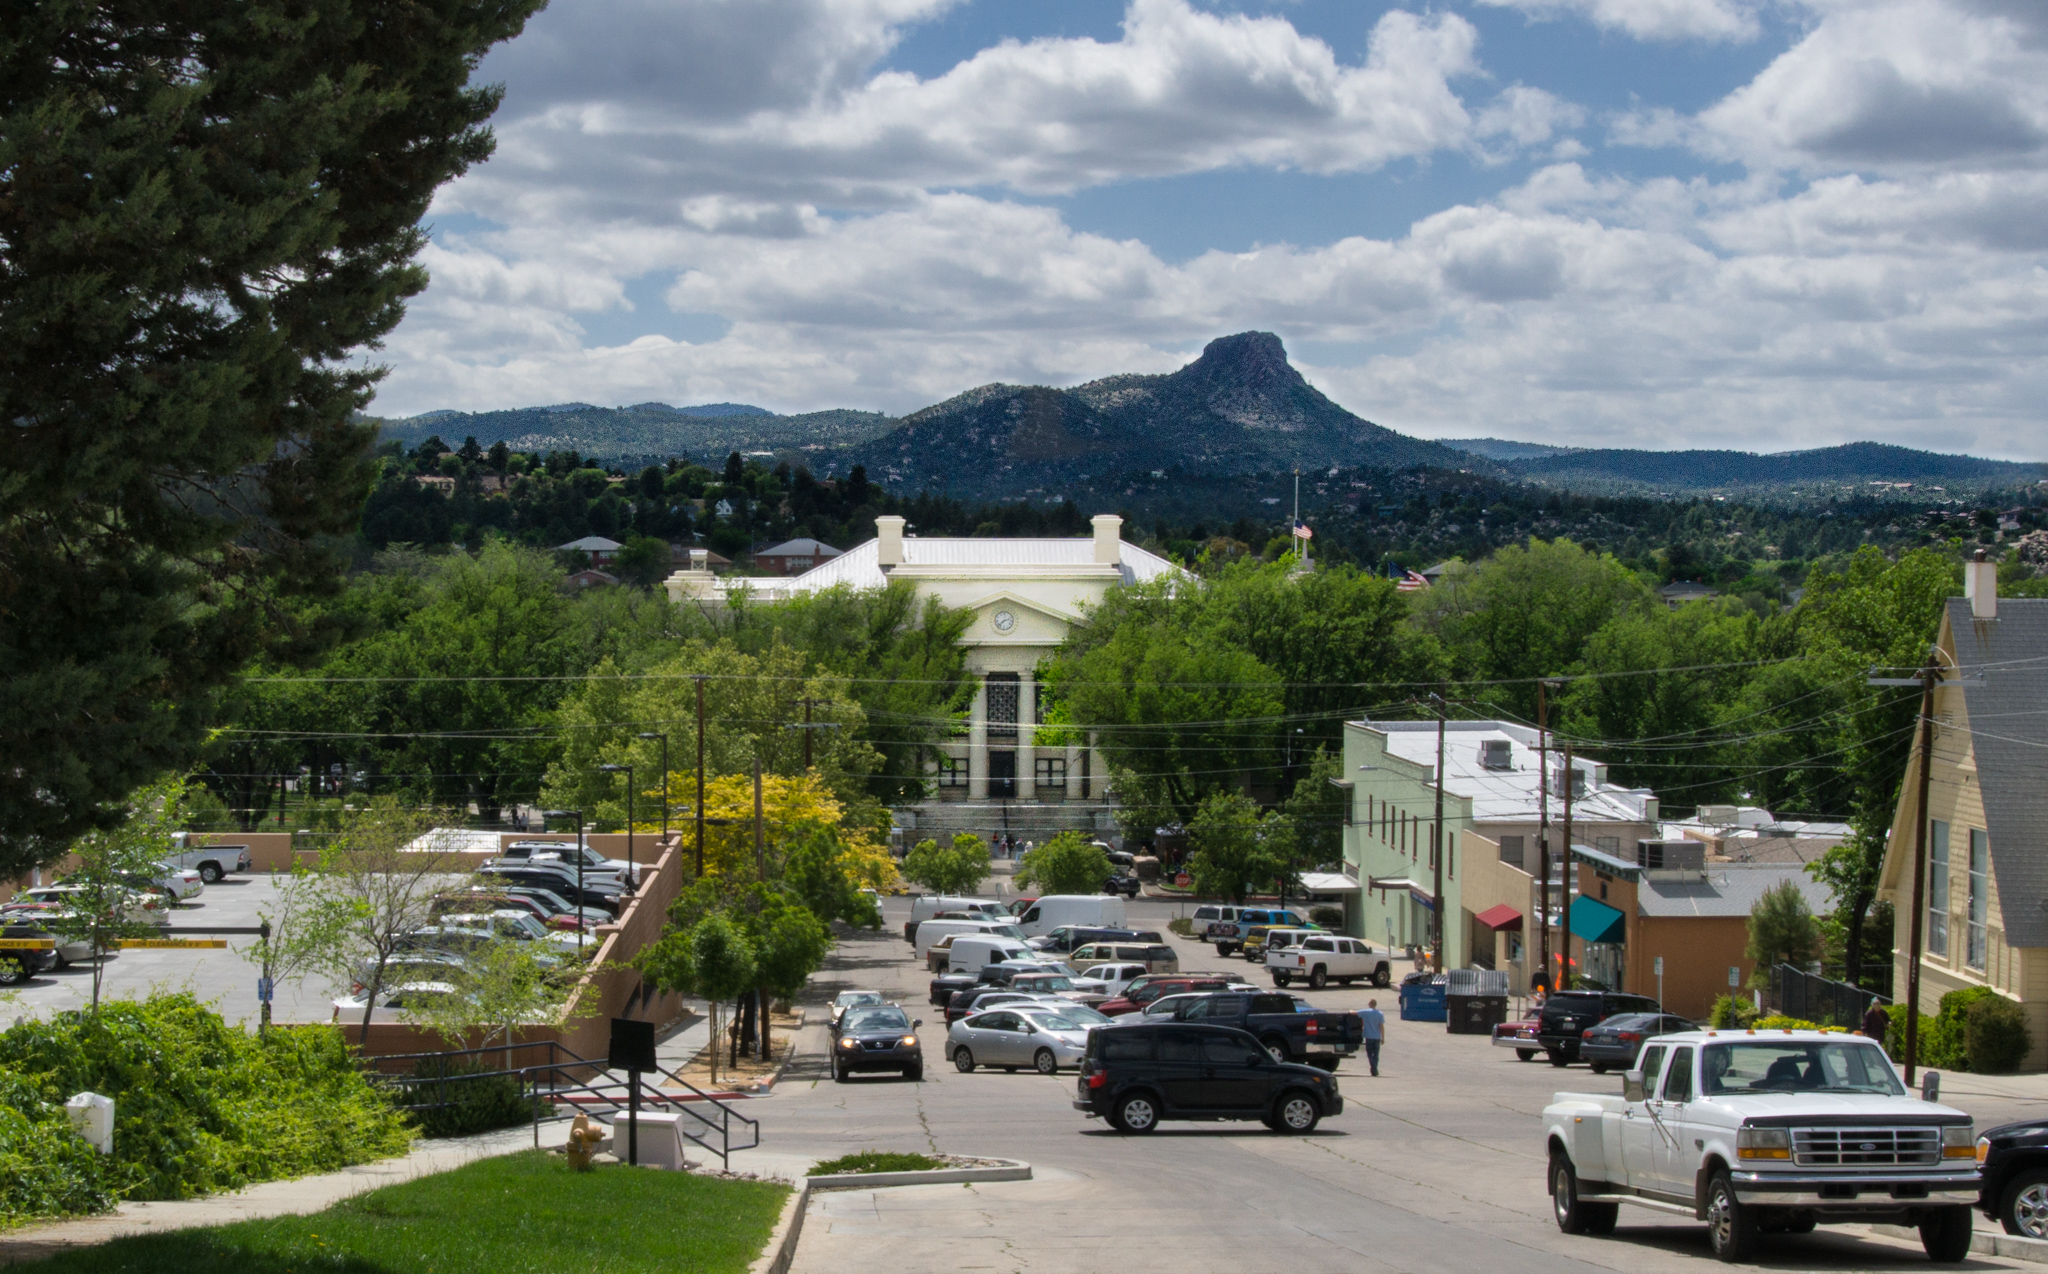 Courthouse and Thumb Butte from East Union St